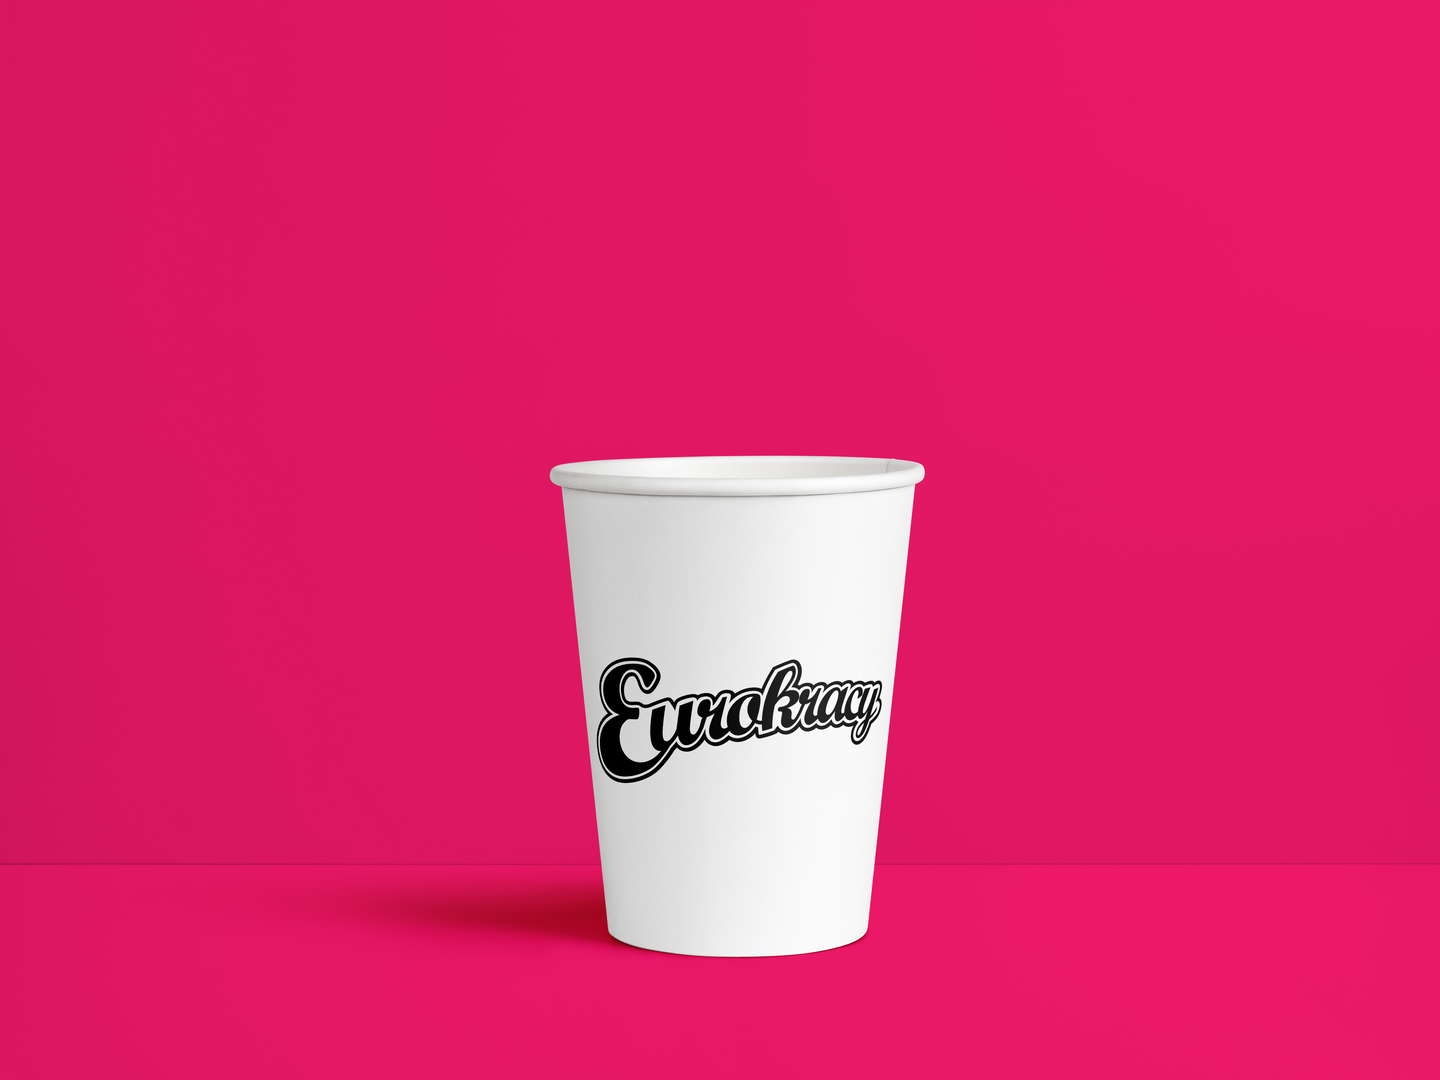 Eurokracy_Cups3.png